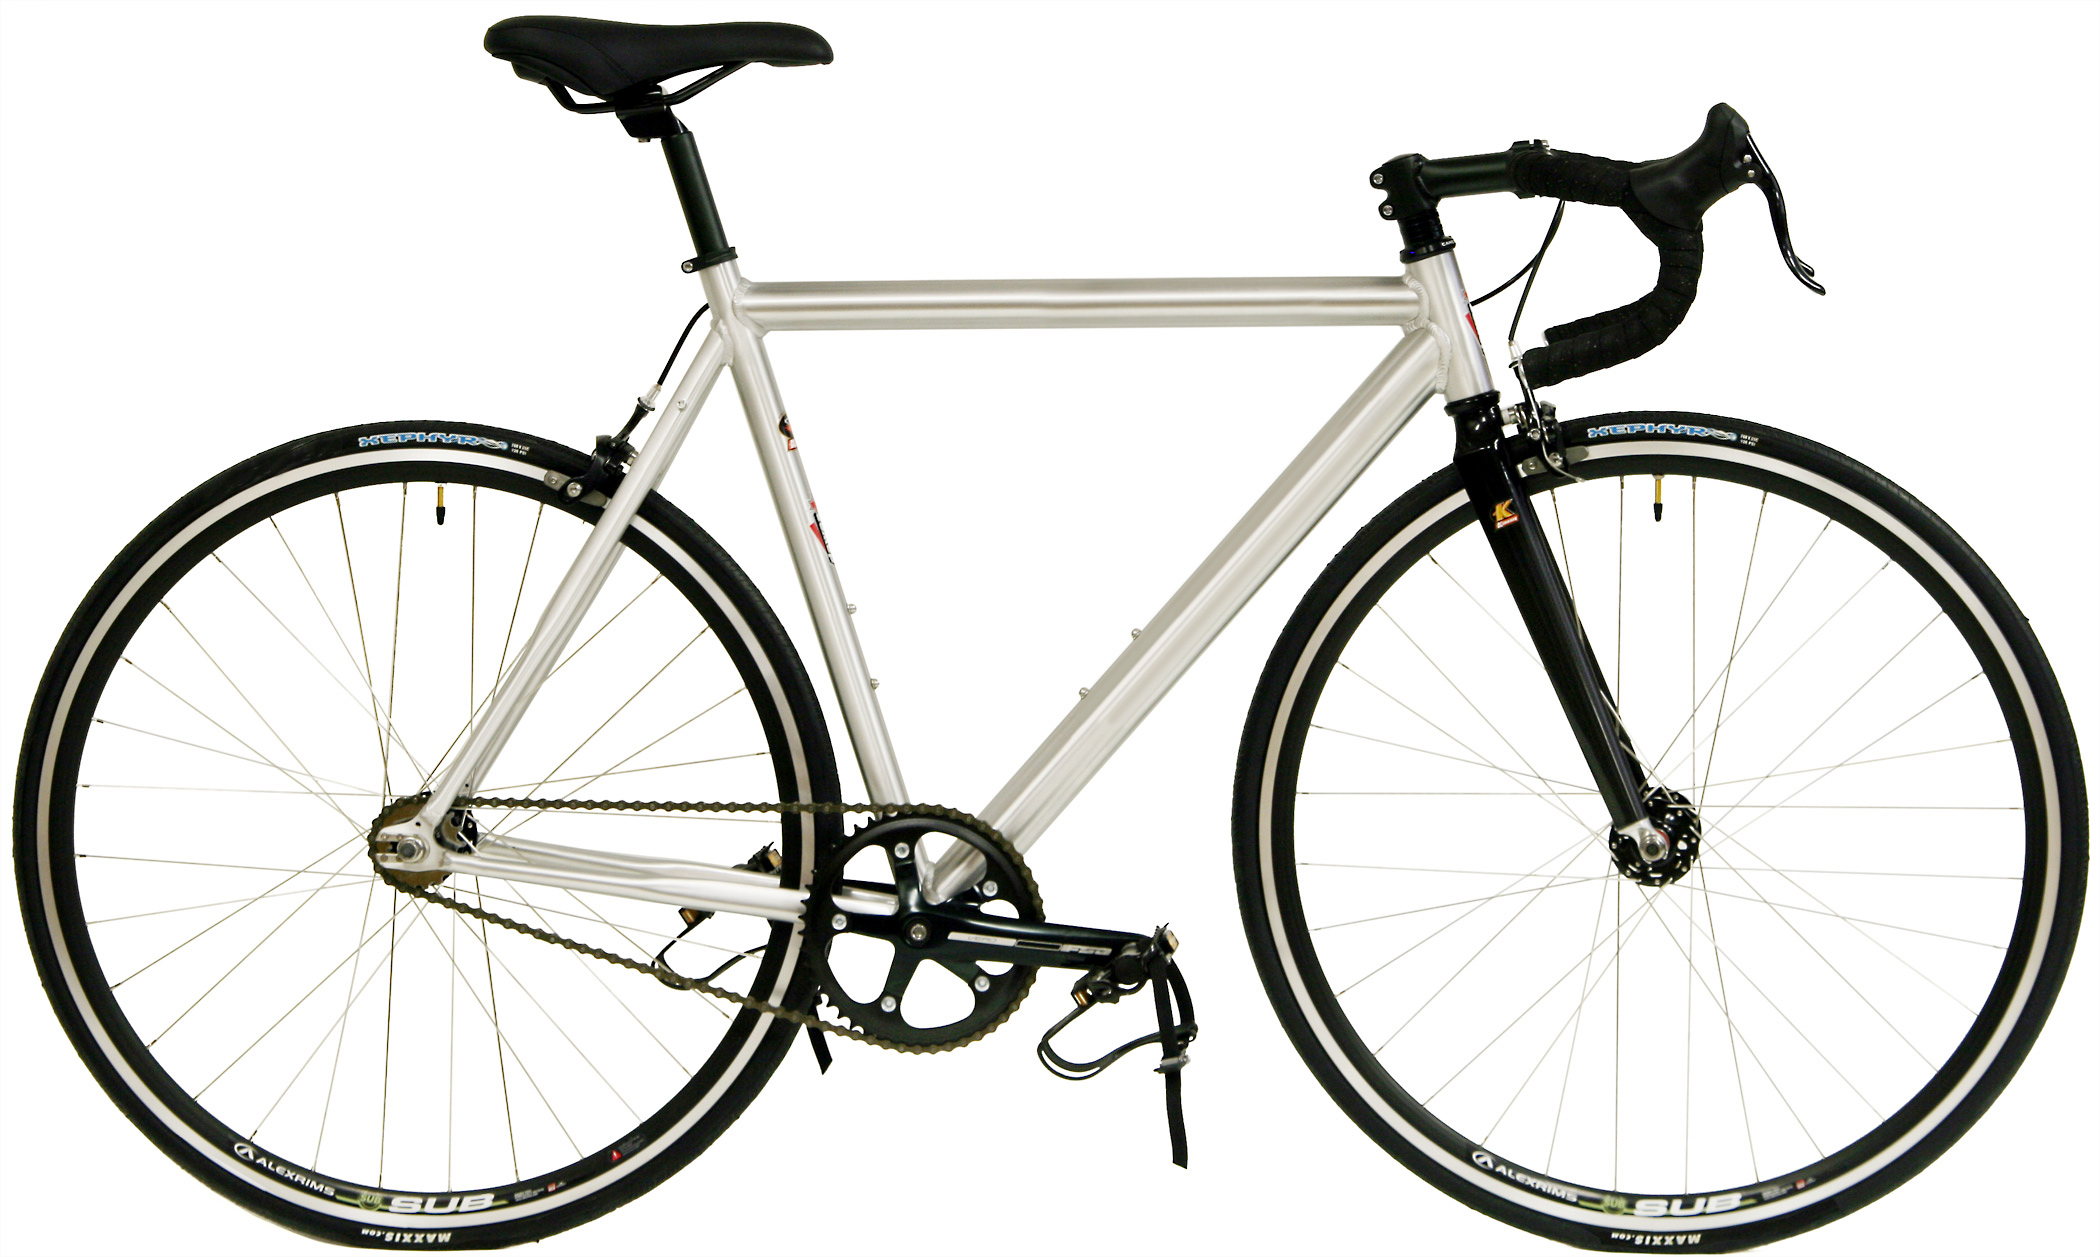 Save Up to 60% Off Fixie Aluminum Track Bikes - Dawes SST AL with ...